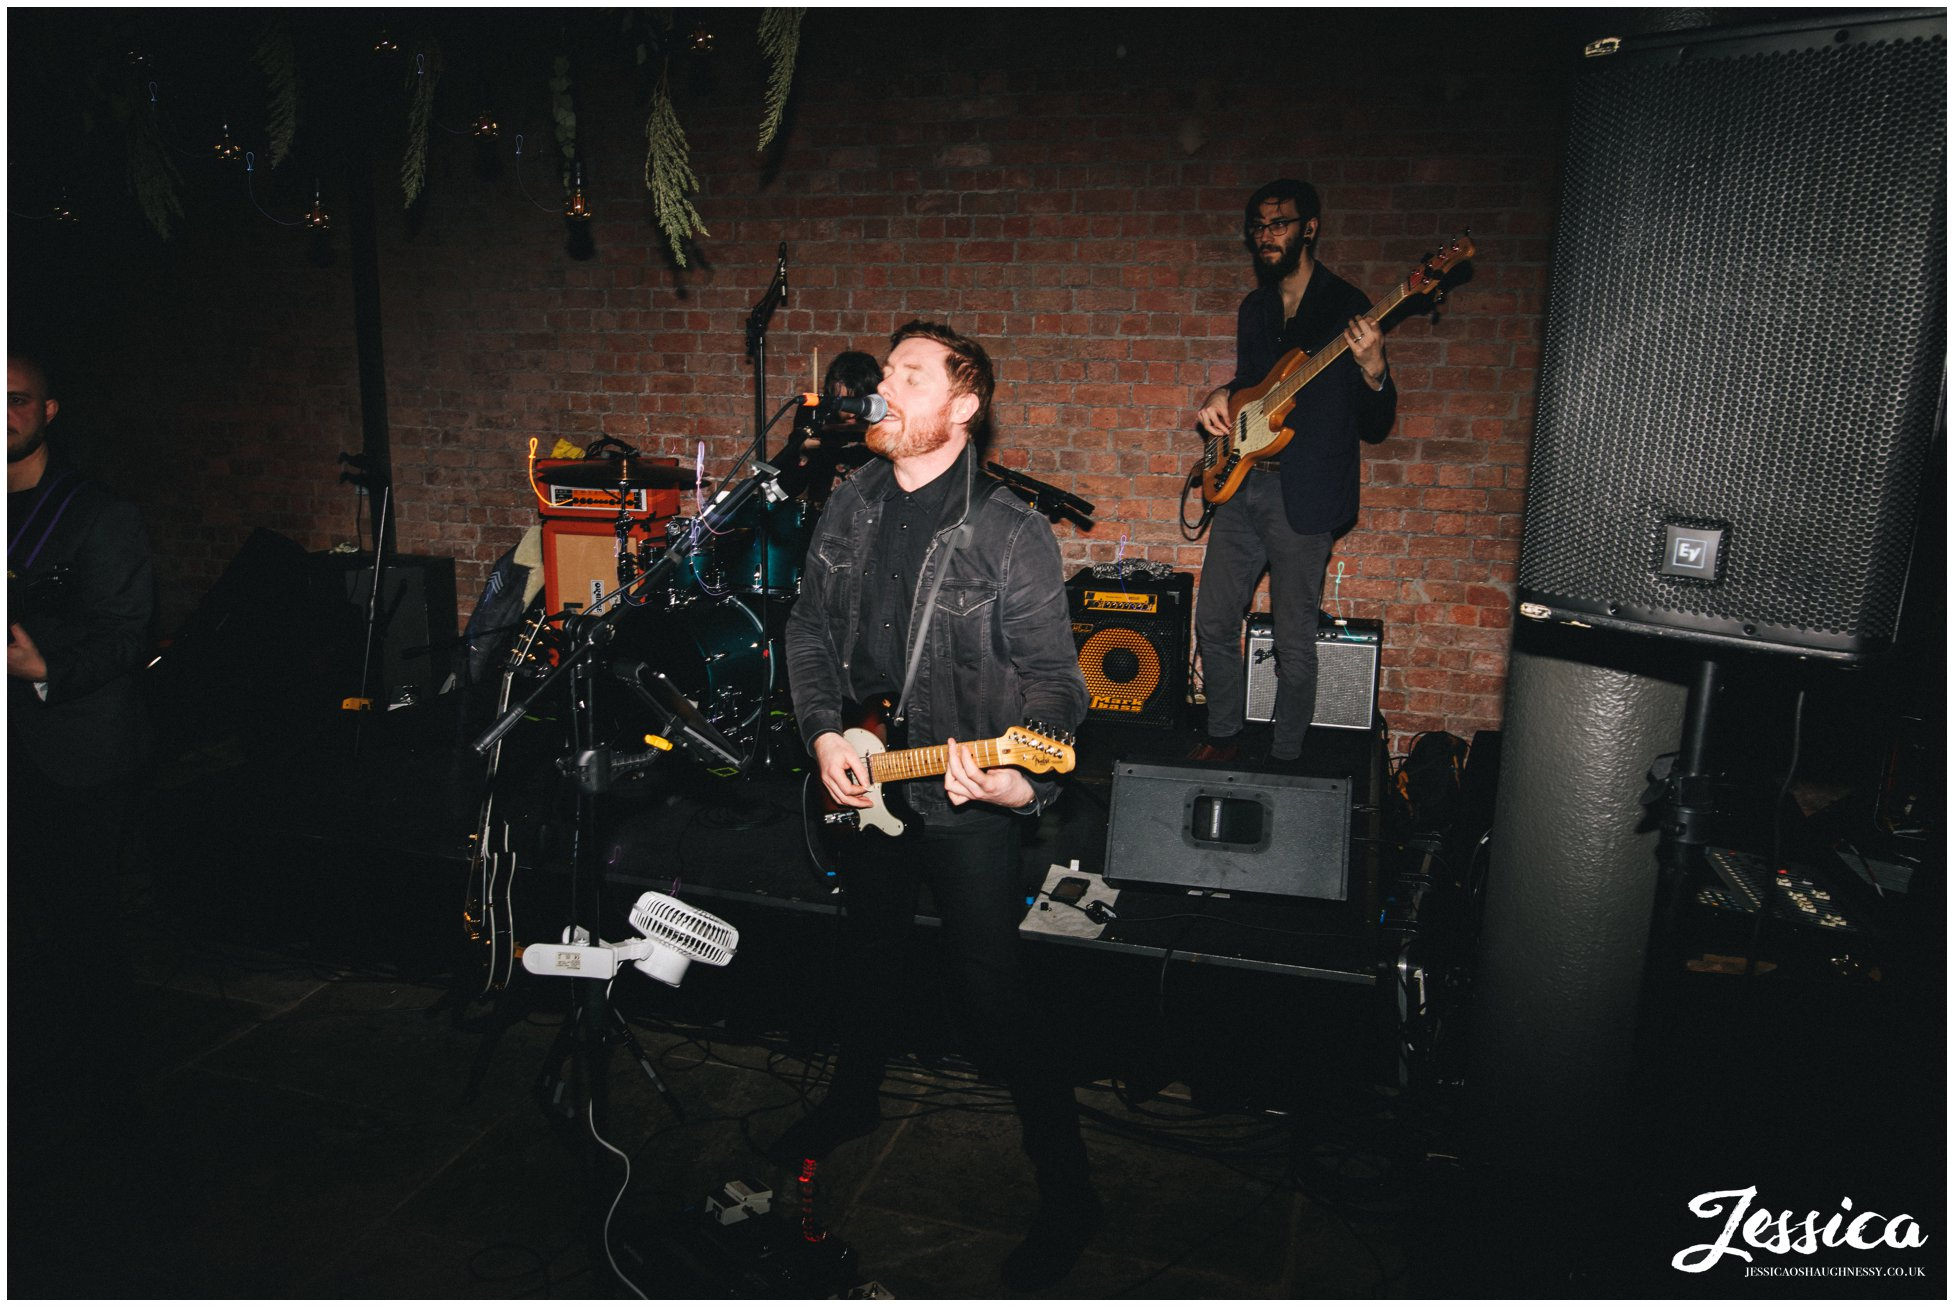 the wedding band preform at the titanic hotel in liverpool